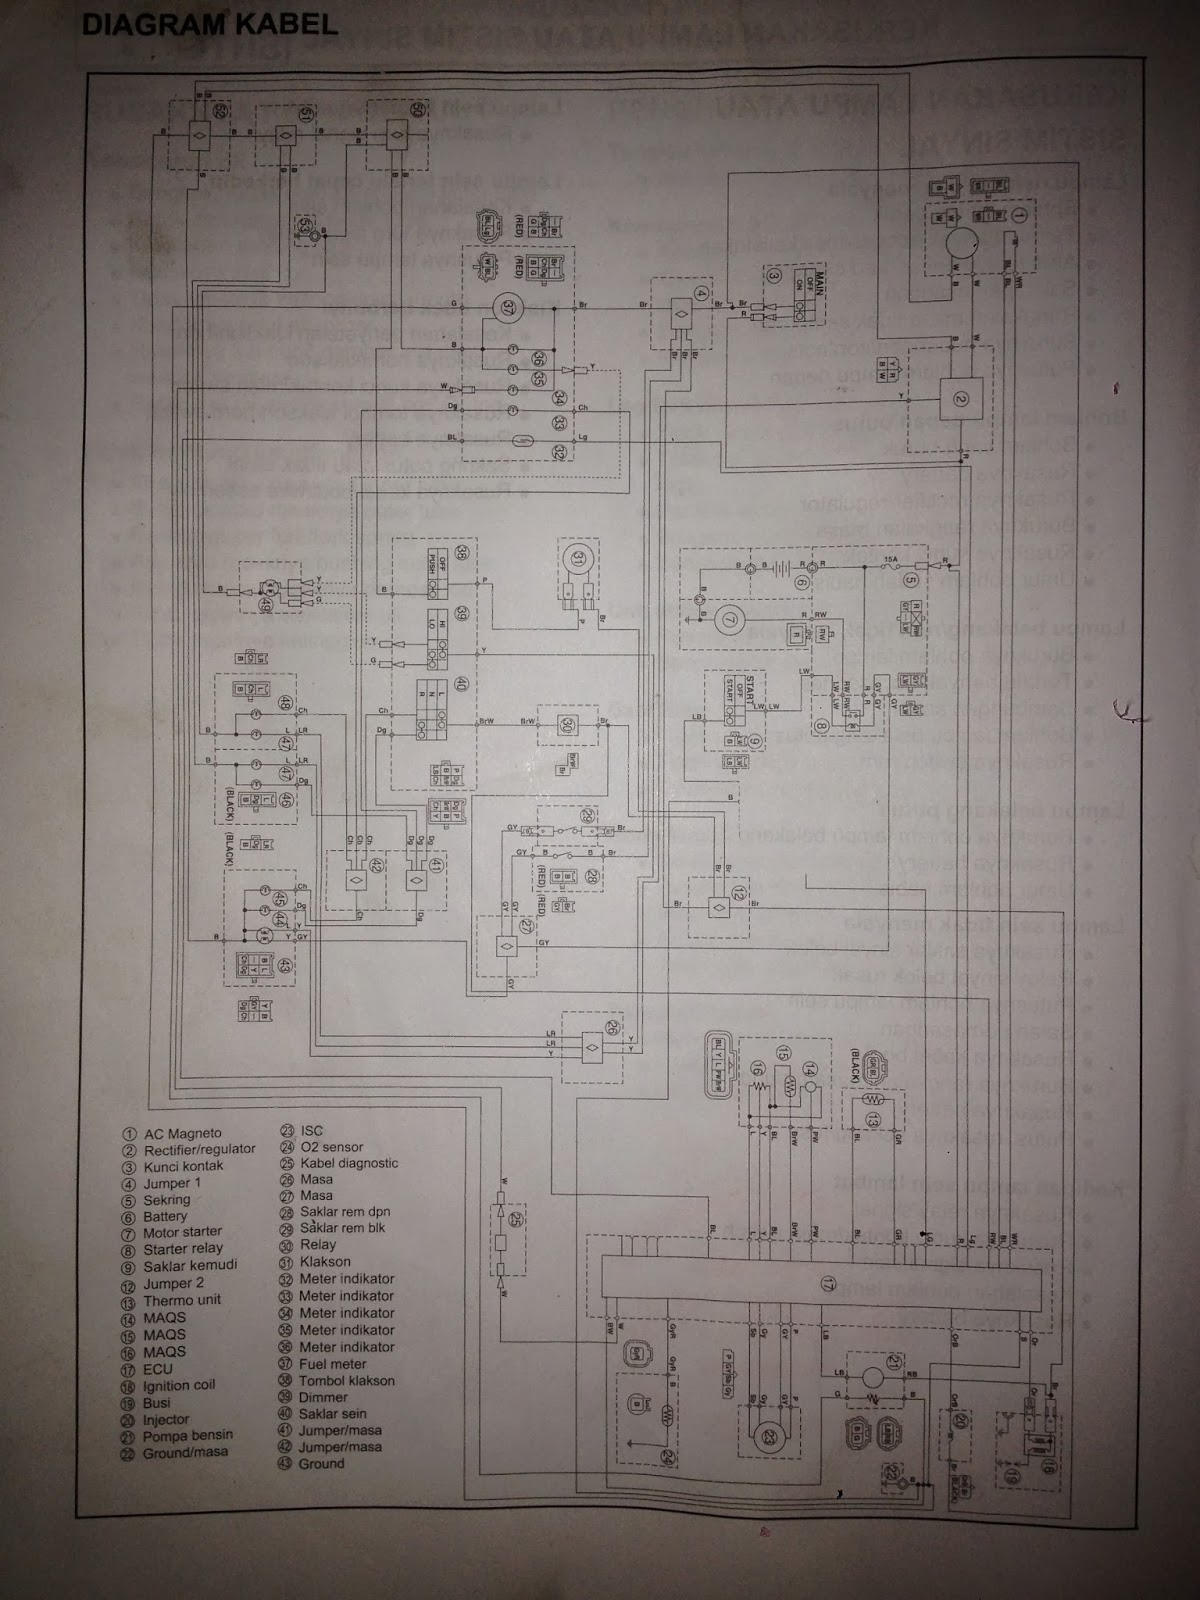 medium resolution of bengkel motor diagram kelistrikan soul gt atau mio j wiring diagram mio j diagram kelistrikan soul